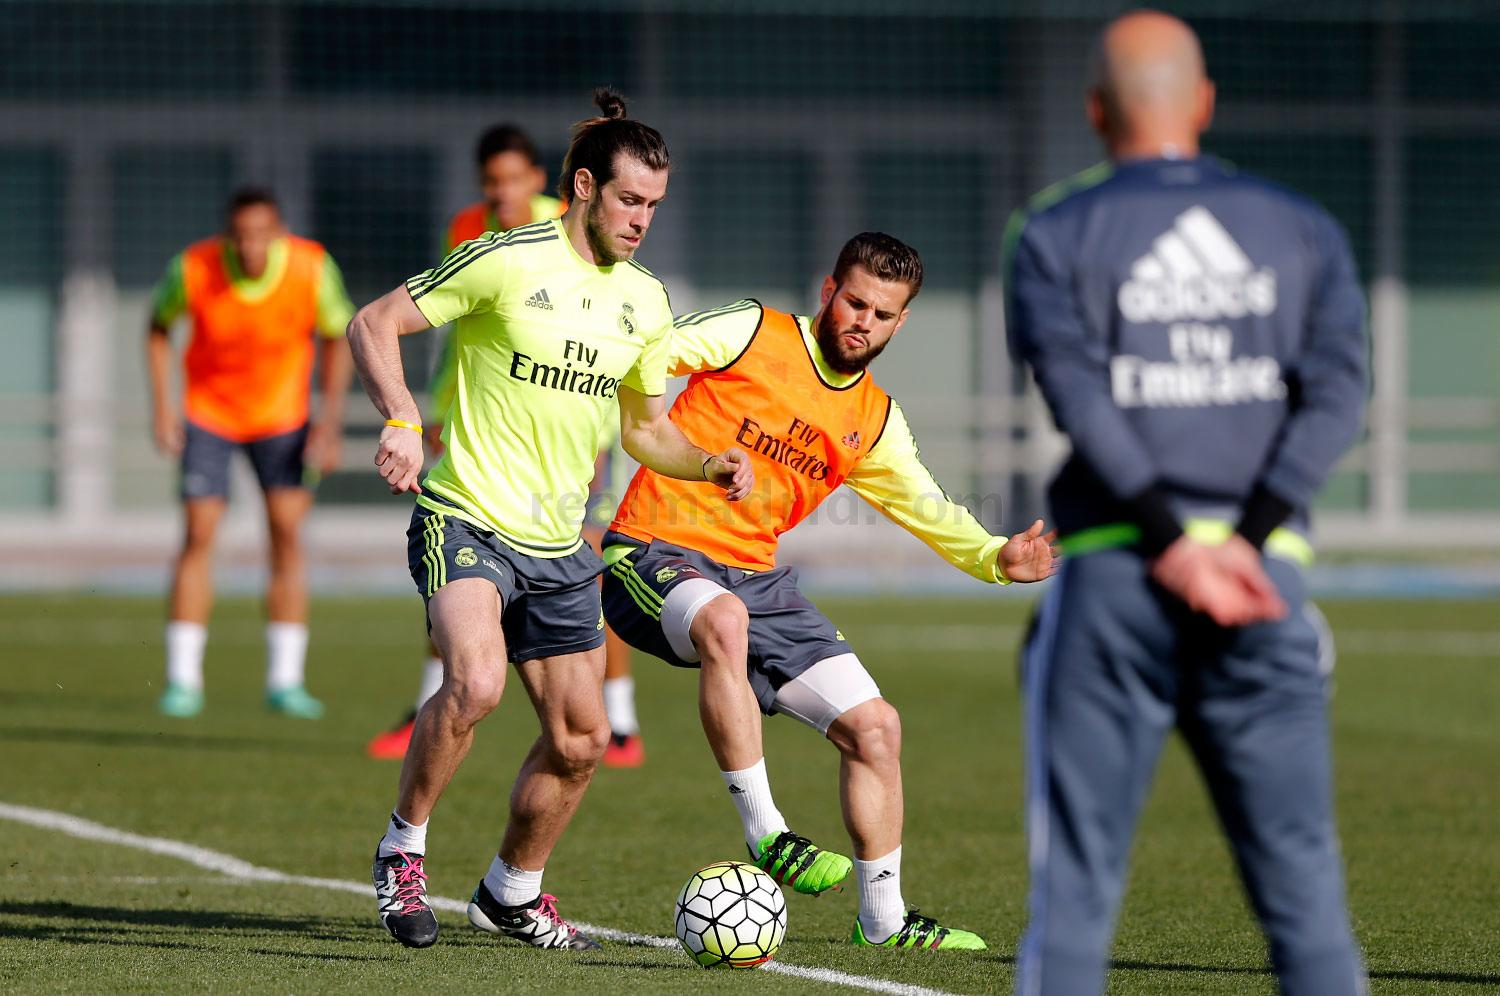 Real Madrid - Entrenamiento del Real Madrid - 12-03-2016